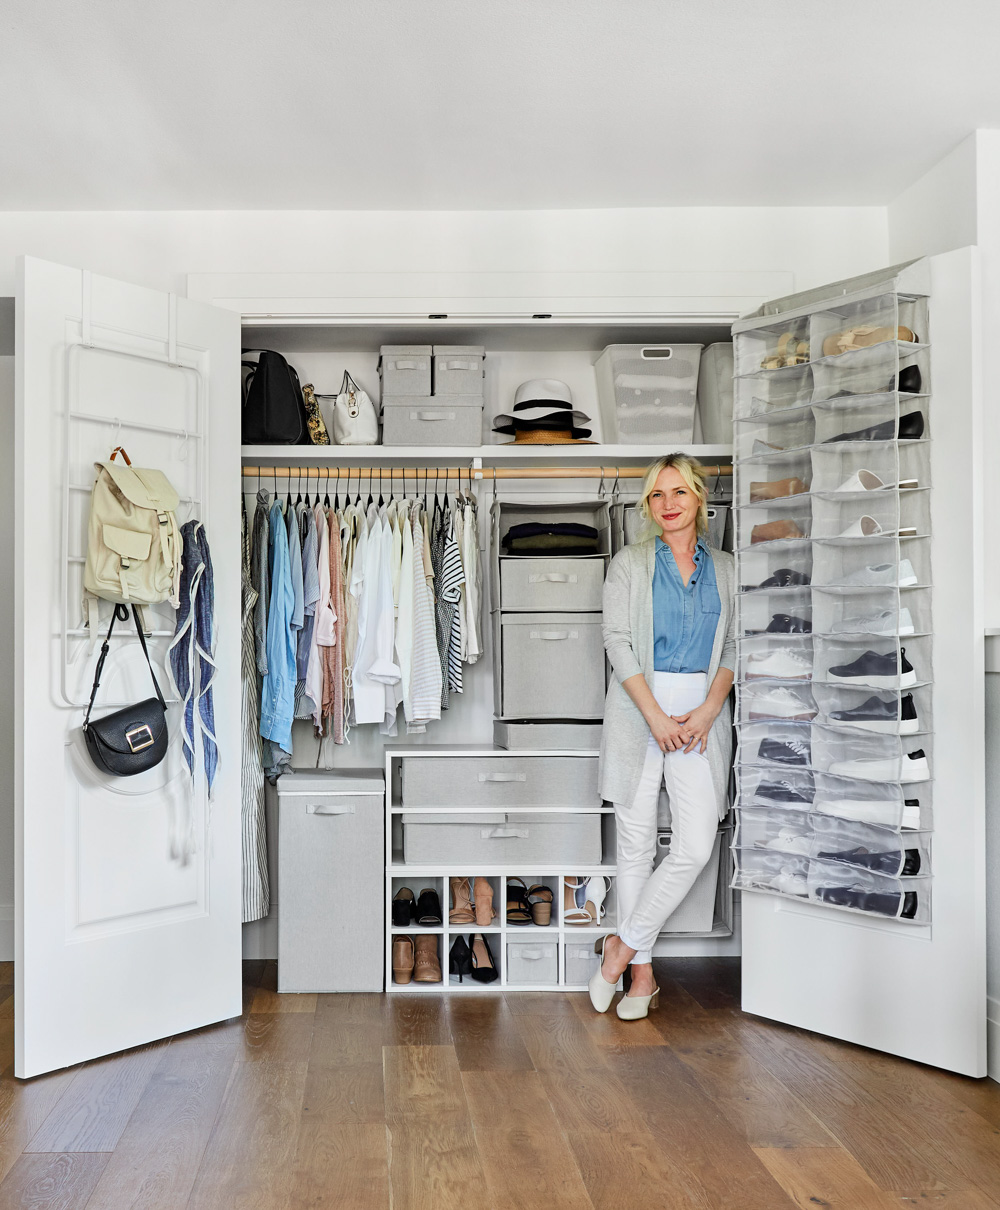 Closet-storage-solutions-from-Emily-Henderson-and-Target